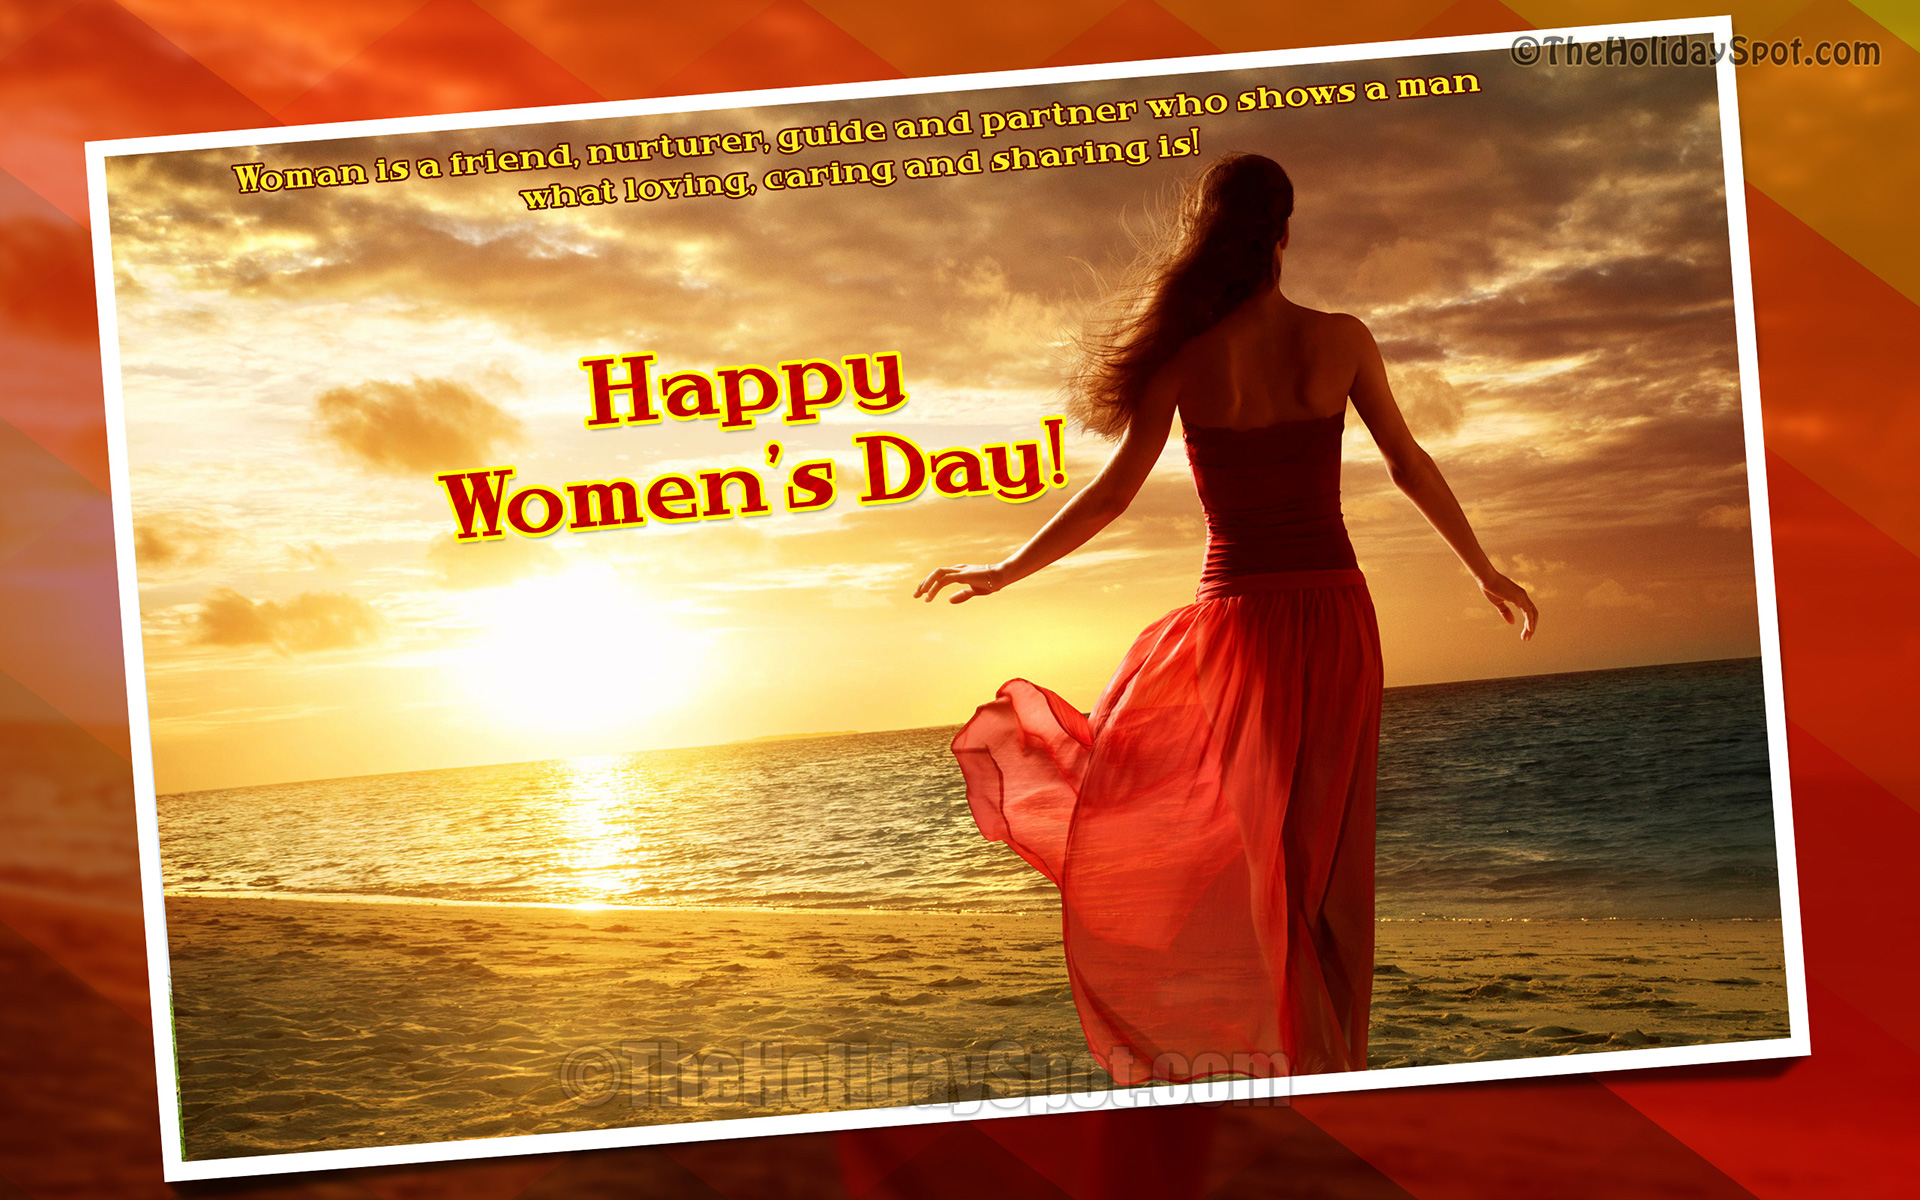 International Womens Day Wallpapers From TheHolidaySpot